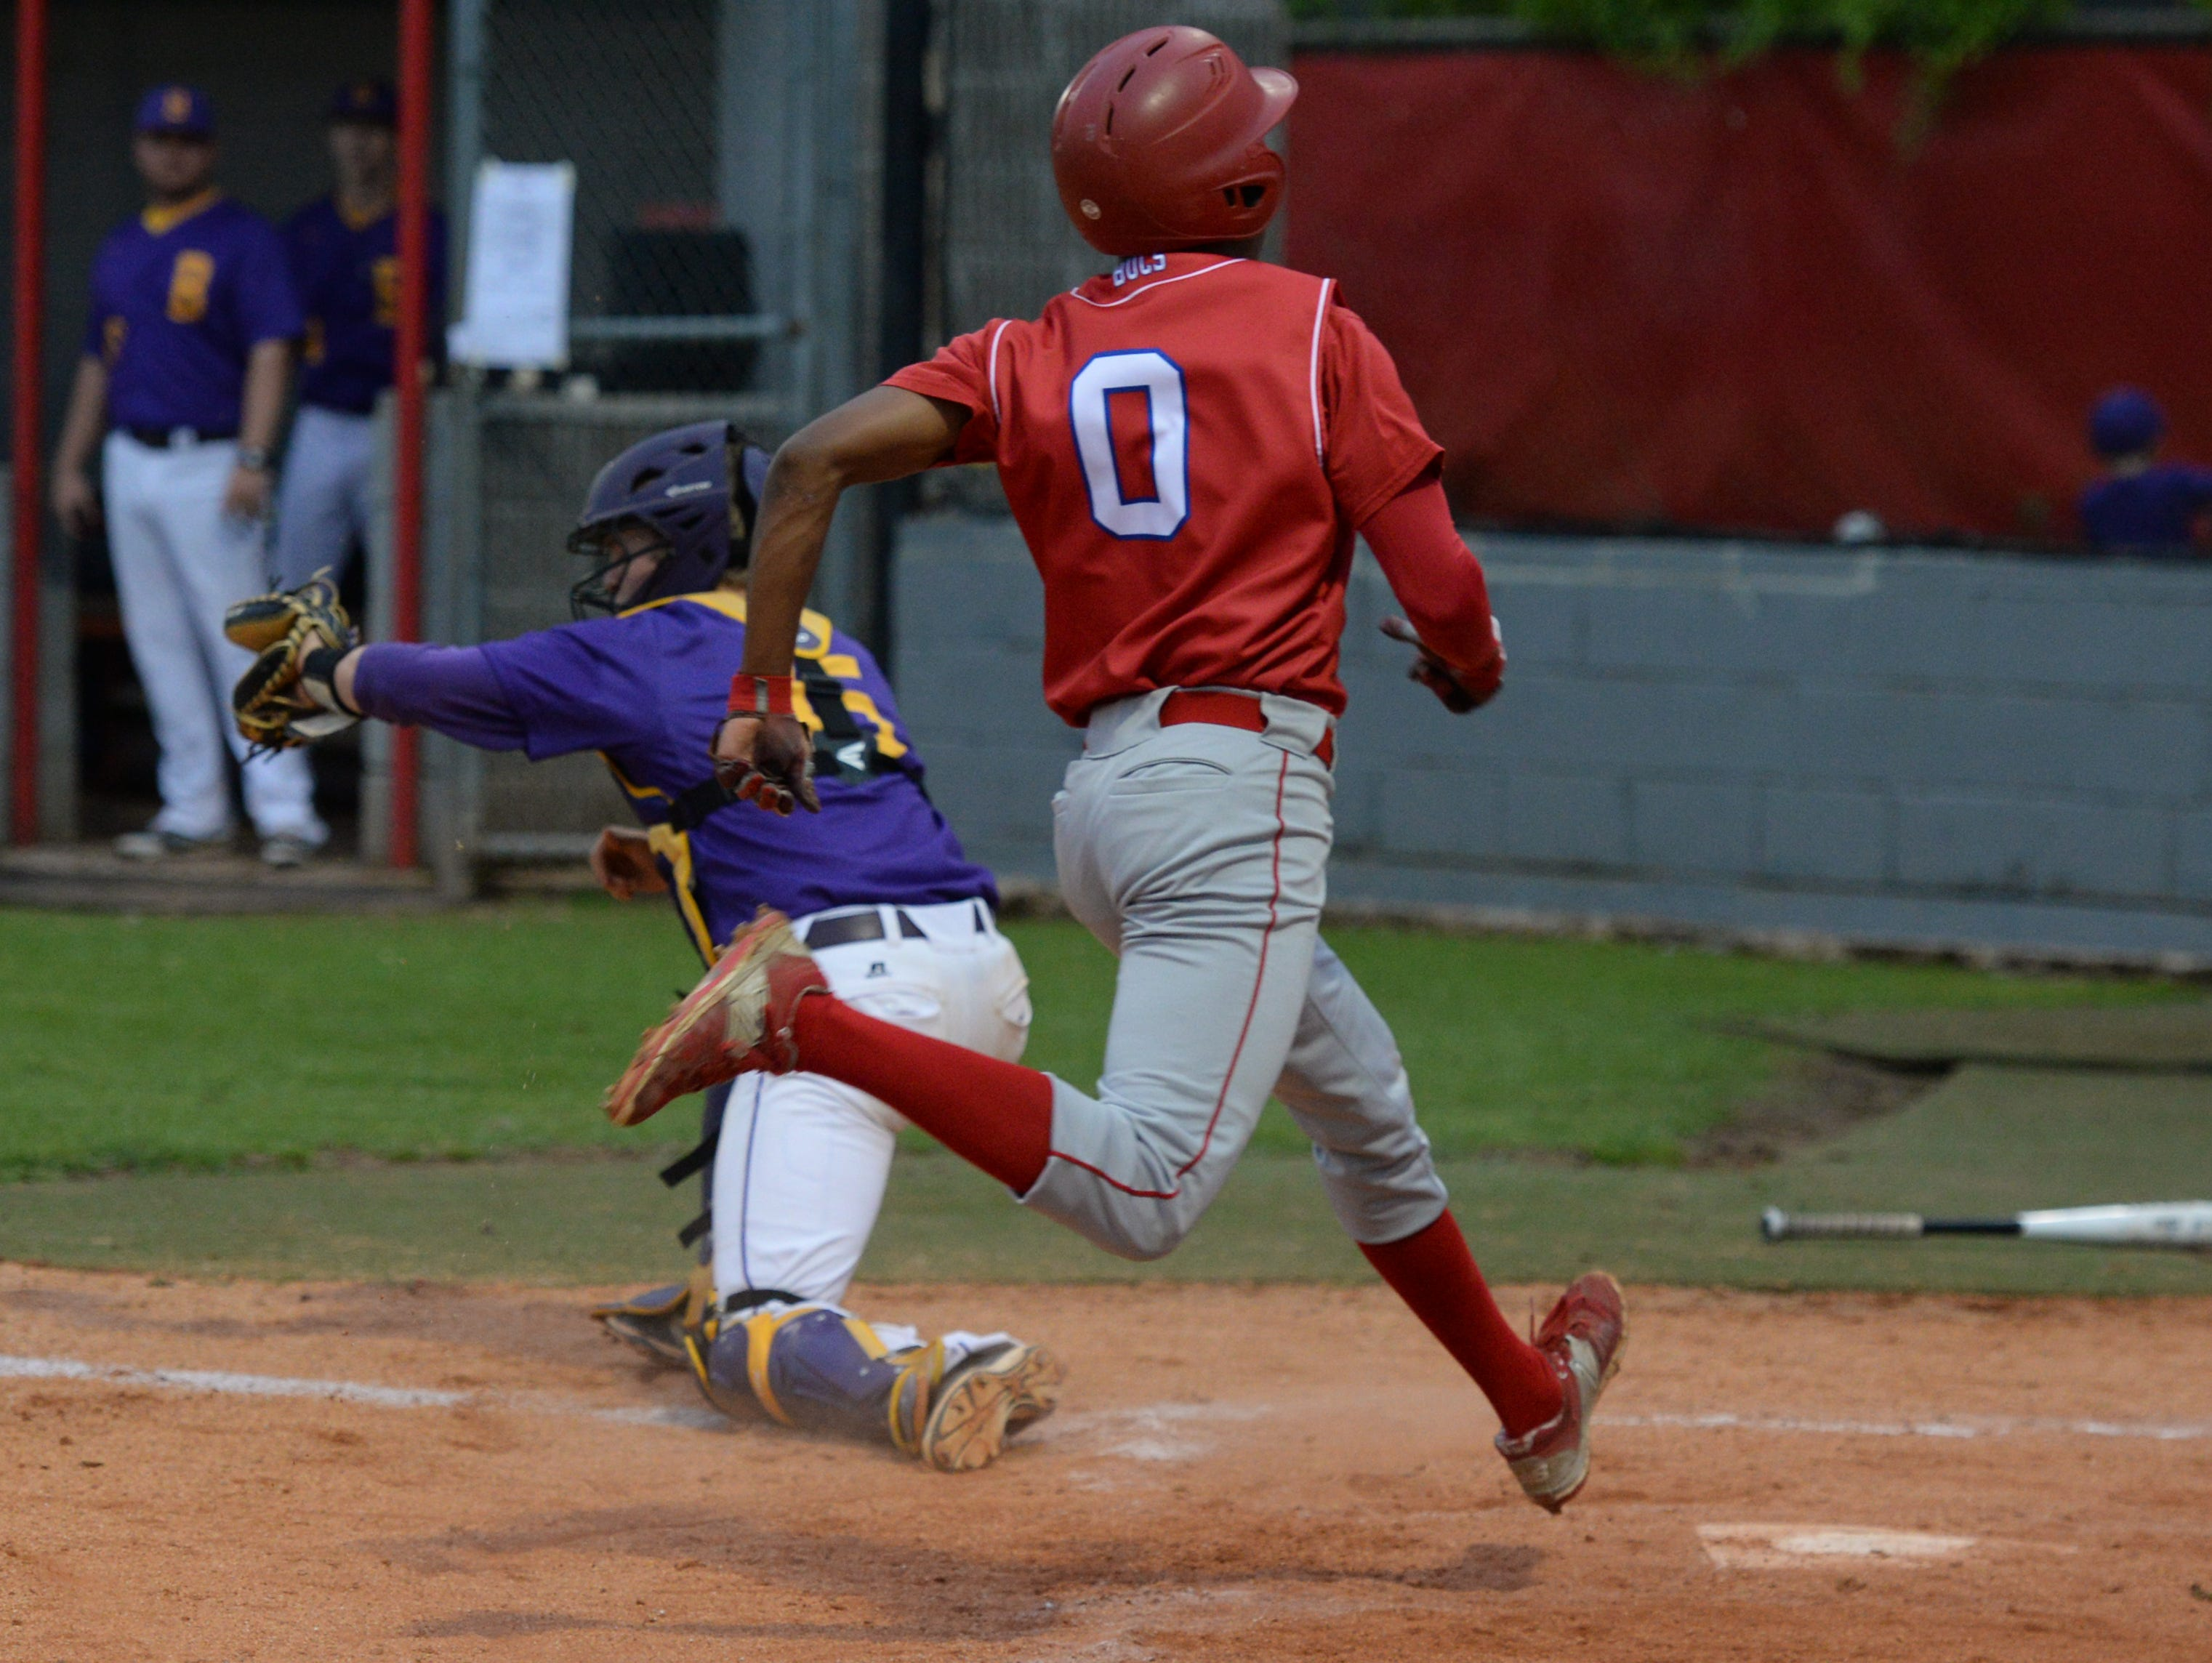 Jeremiah Wilson crossed the plate to tie the score 4-4 in the fourth inning.